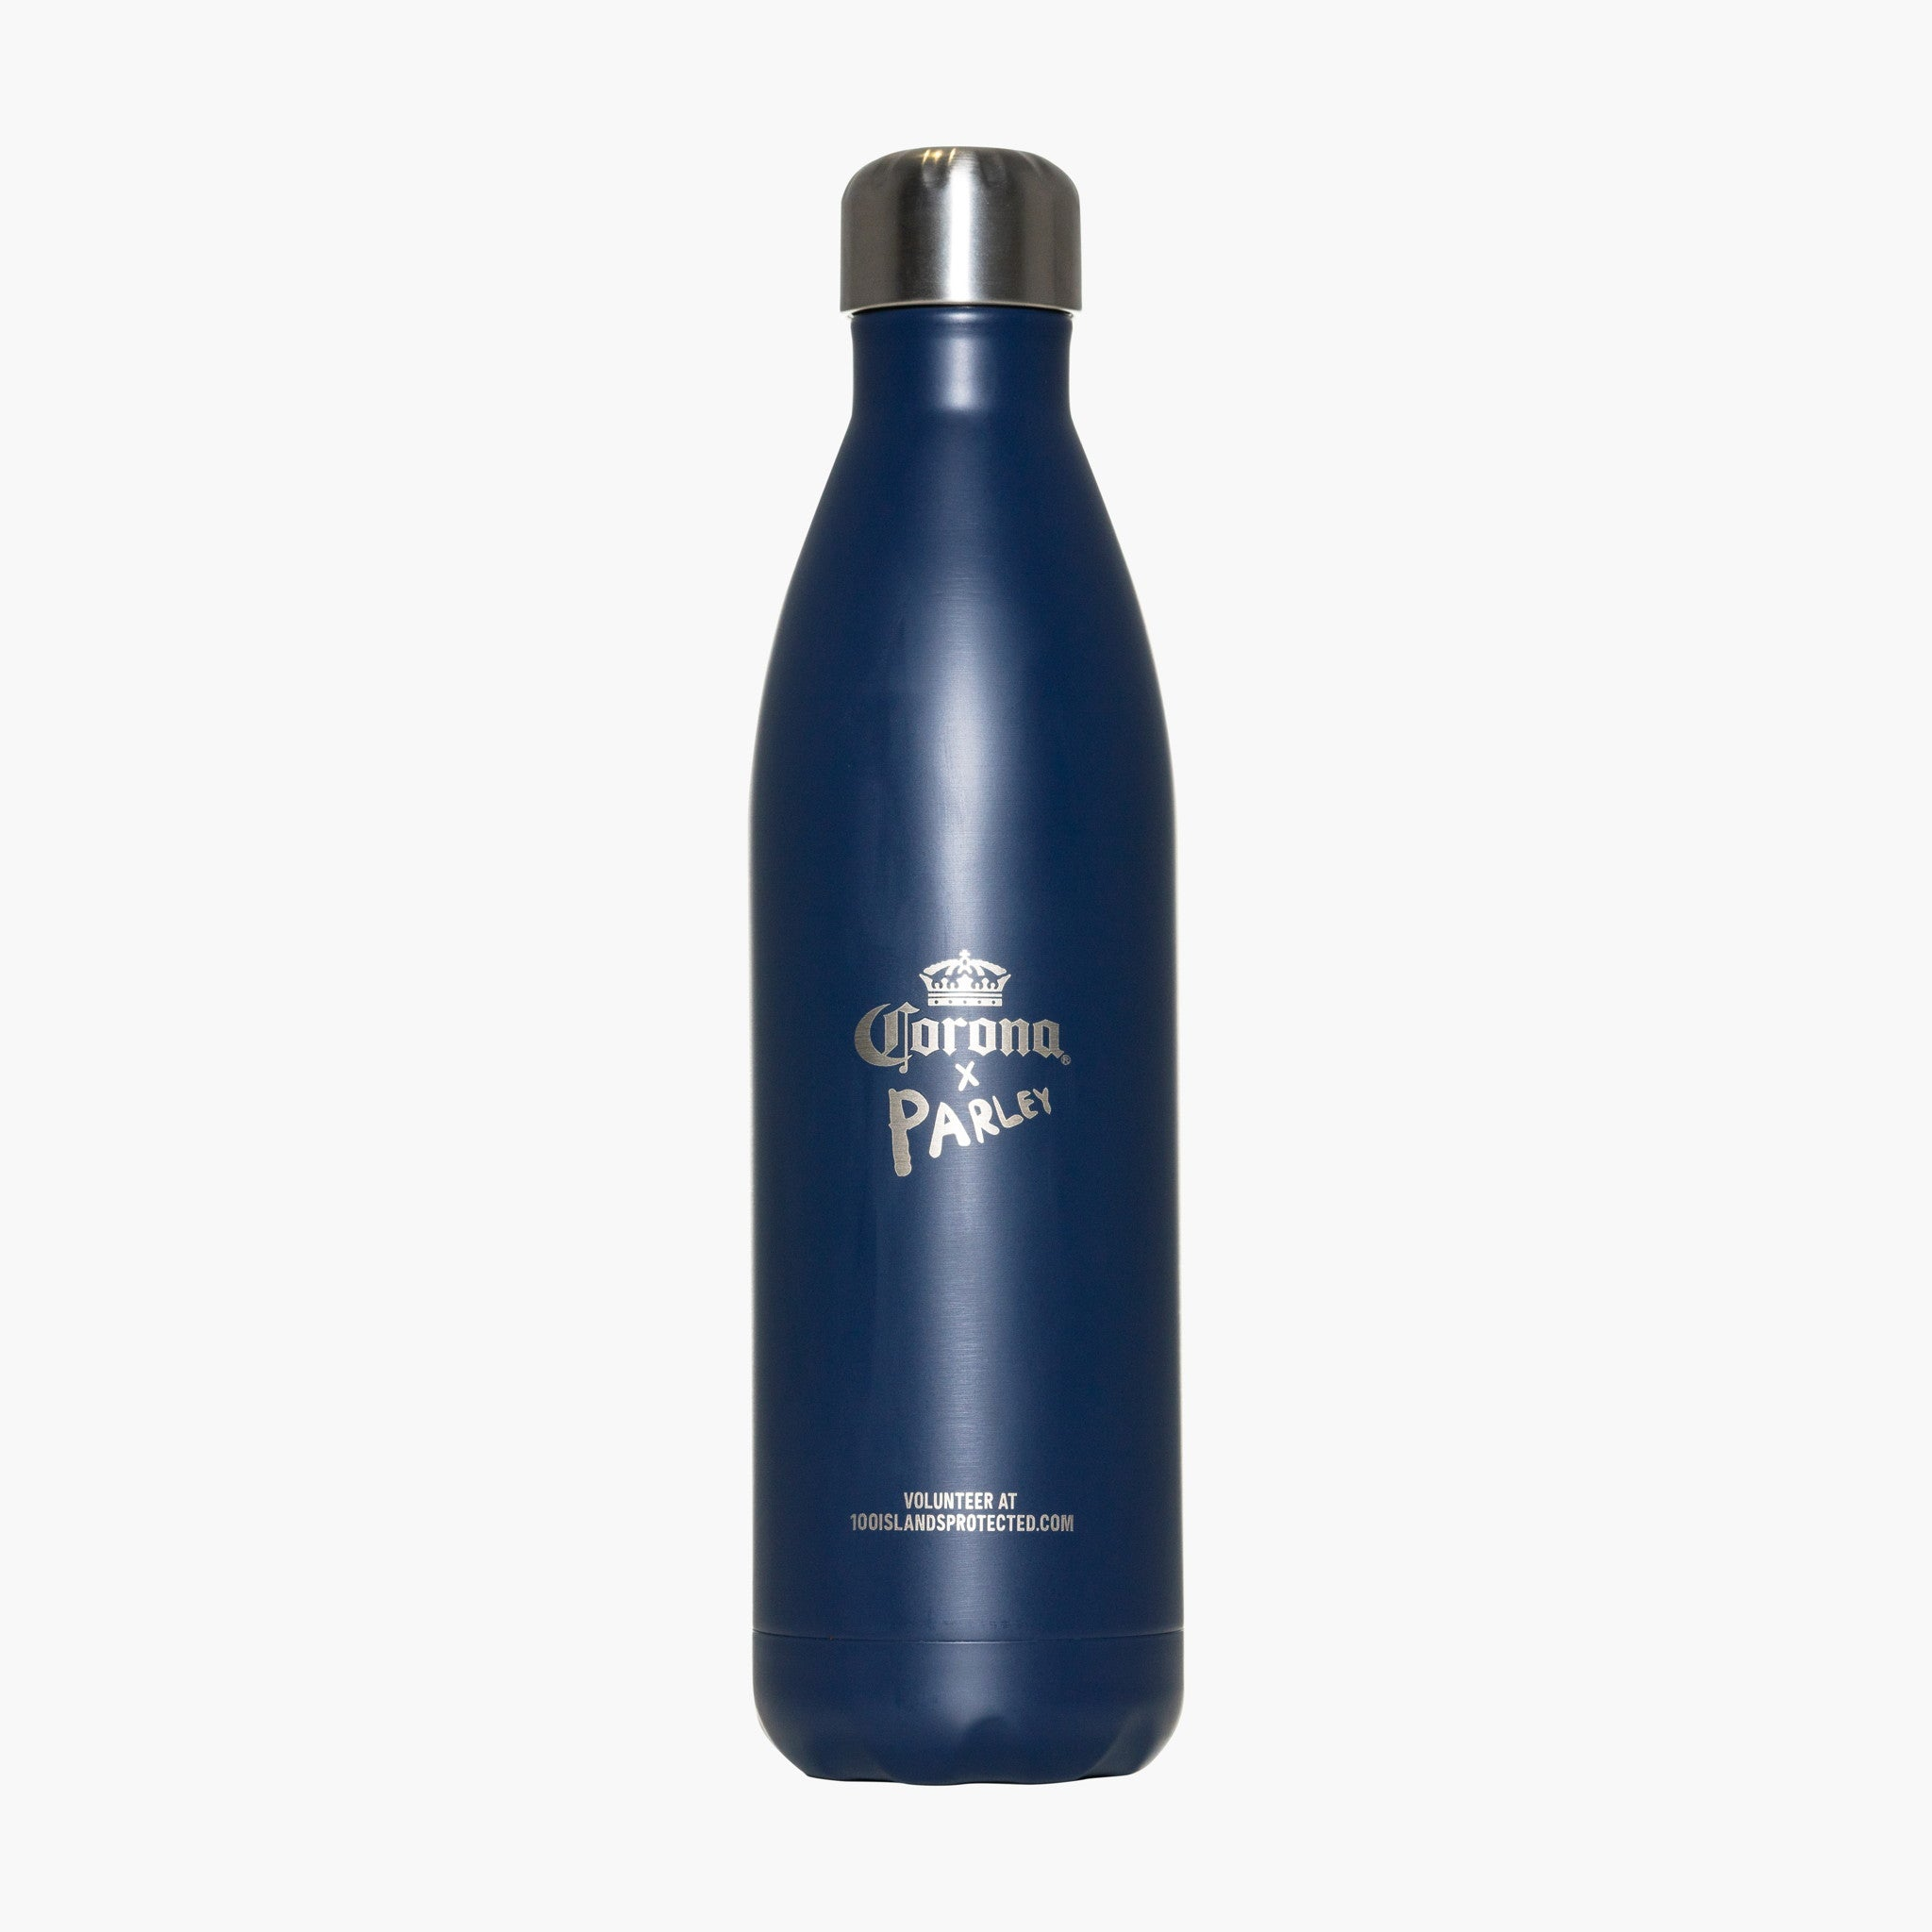 Corona x Parley Stainless Steel Water Bottle